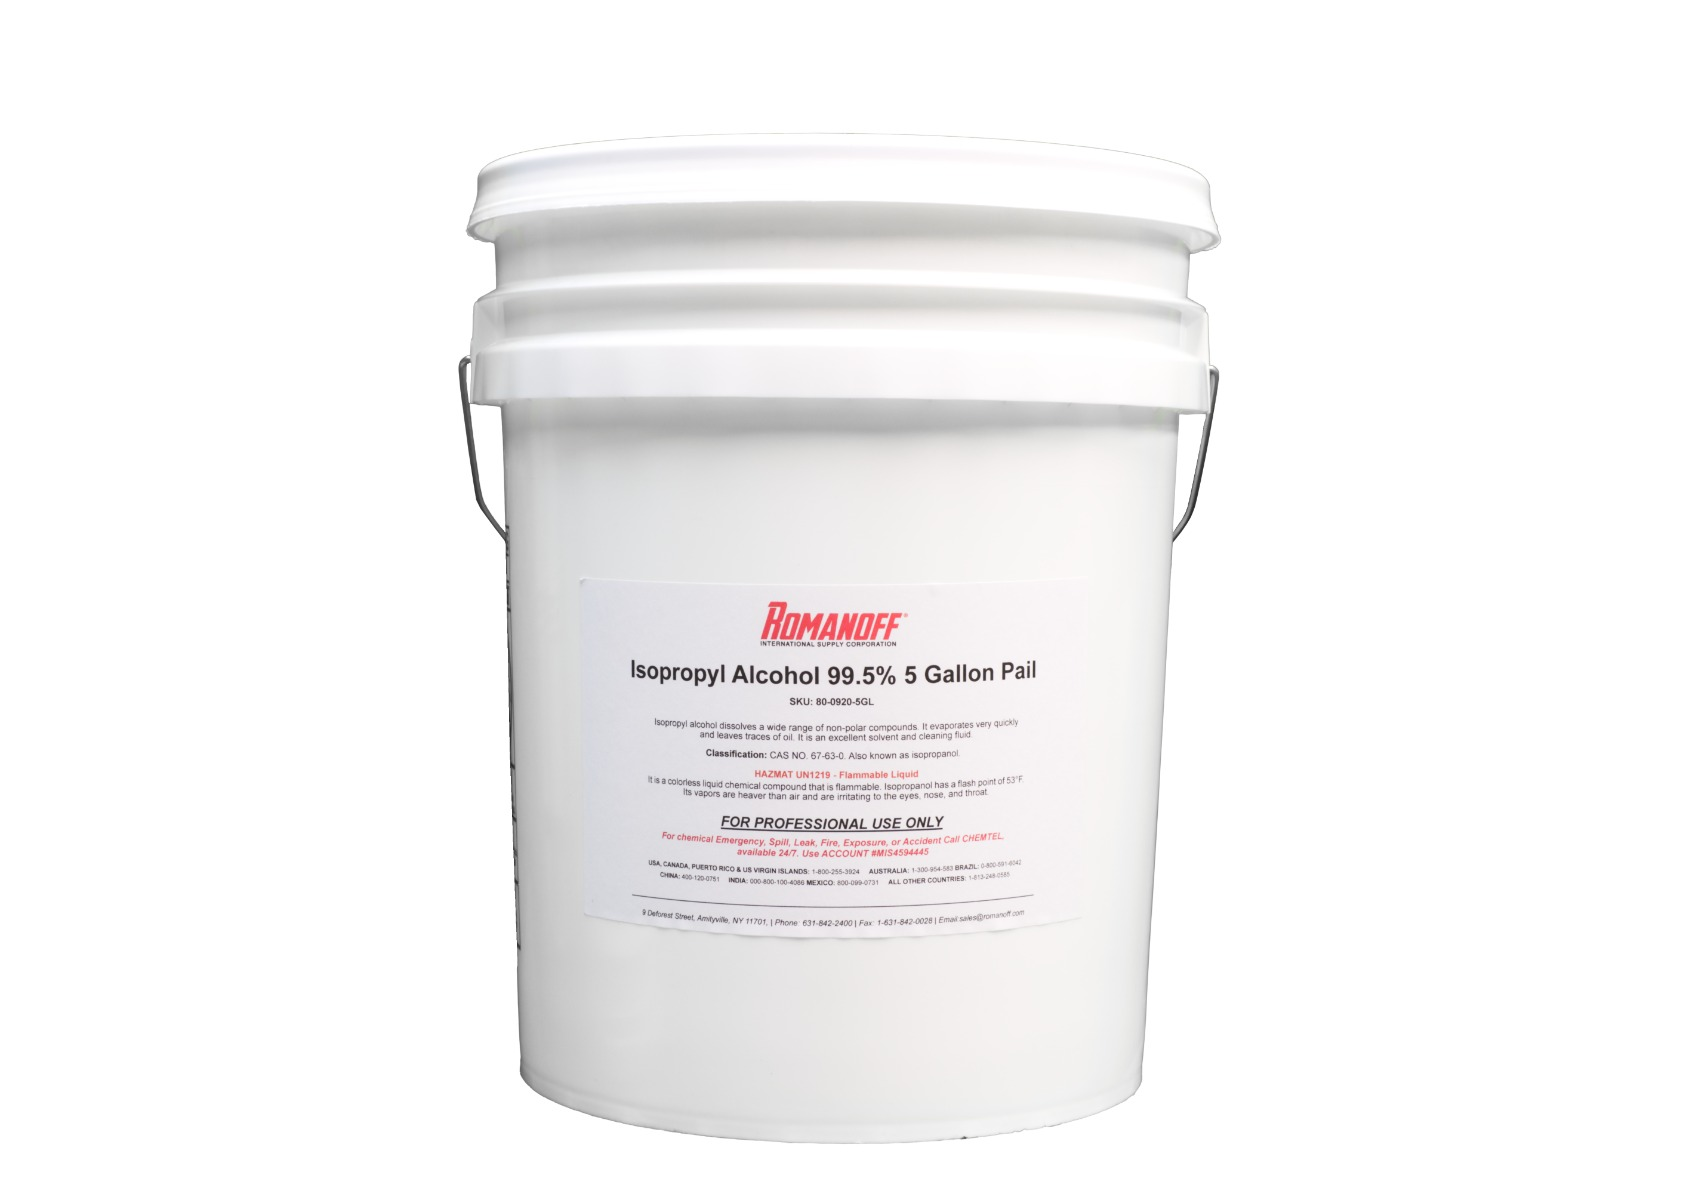 Isopropyl Alcohol 99.5% 5-Gallon Pail